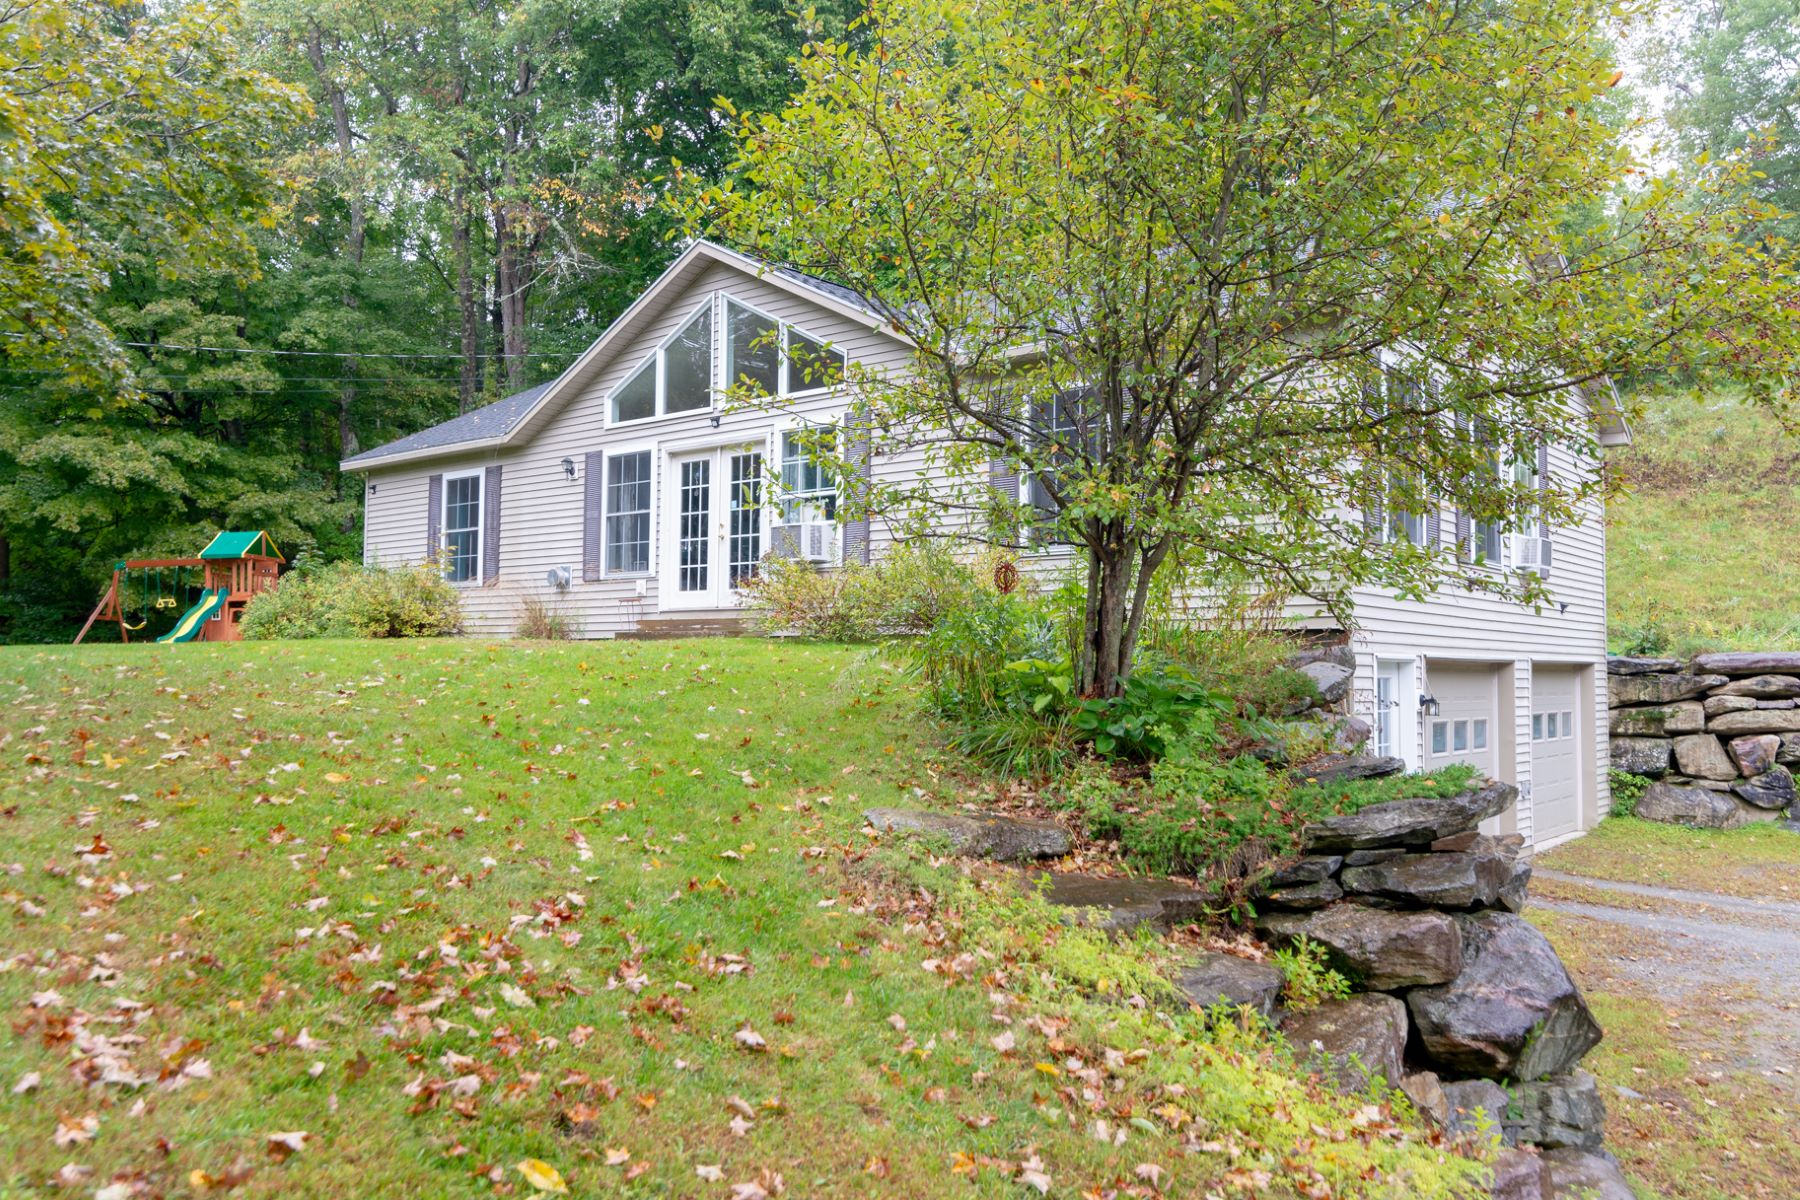 Single Family Home for Sale at Move Right In 4084 North Rd Sunderland, Vermont 05250 United States